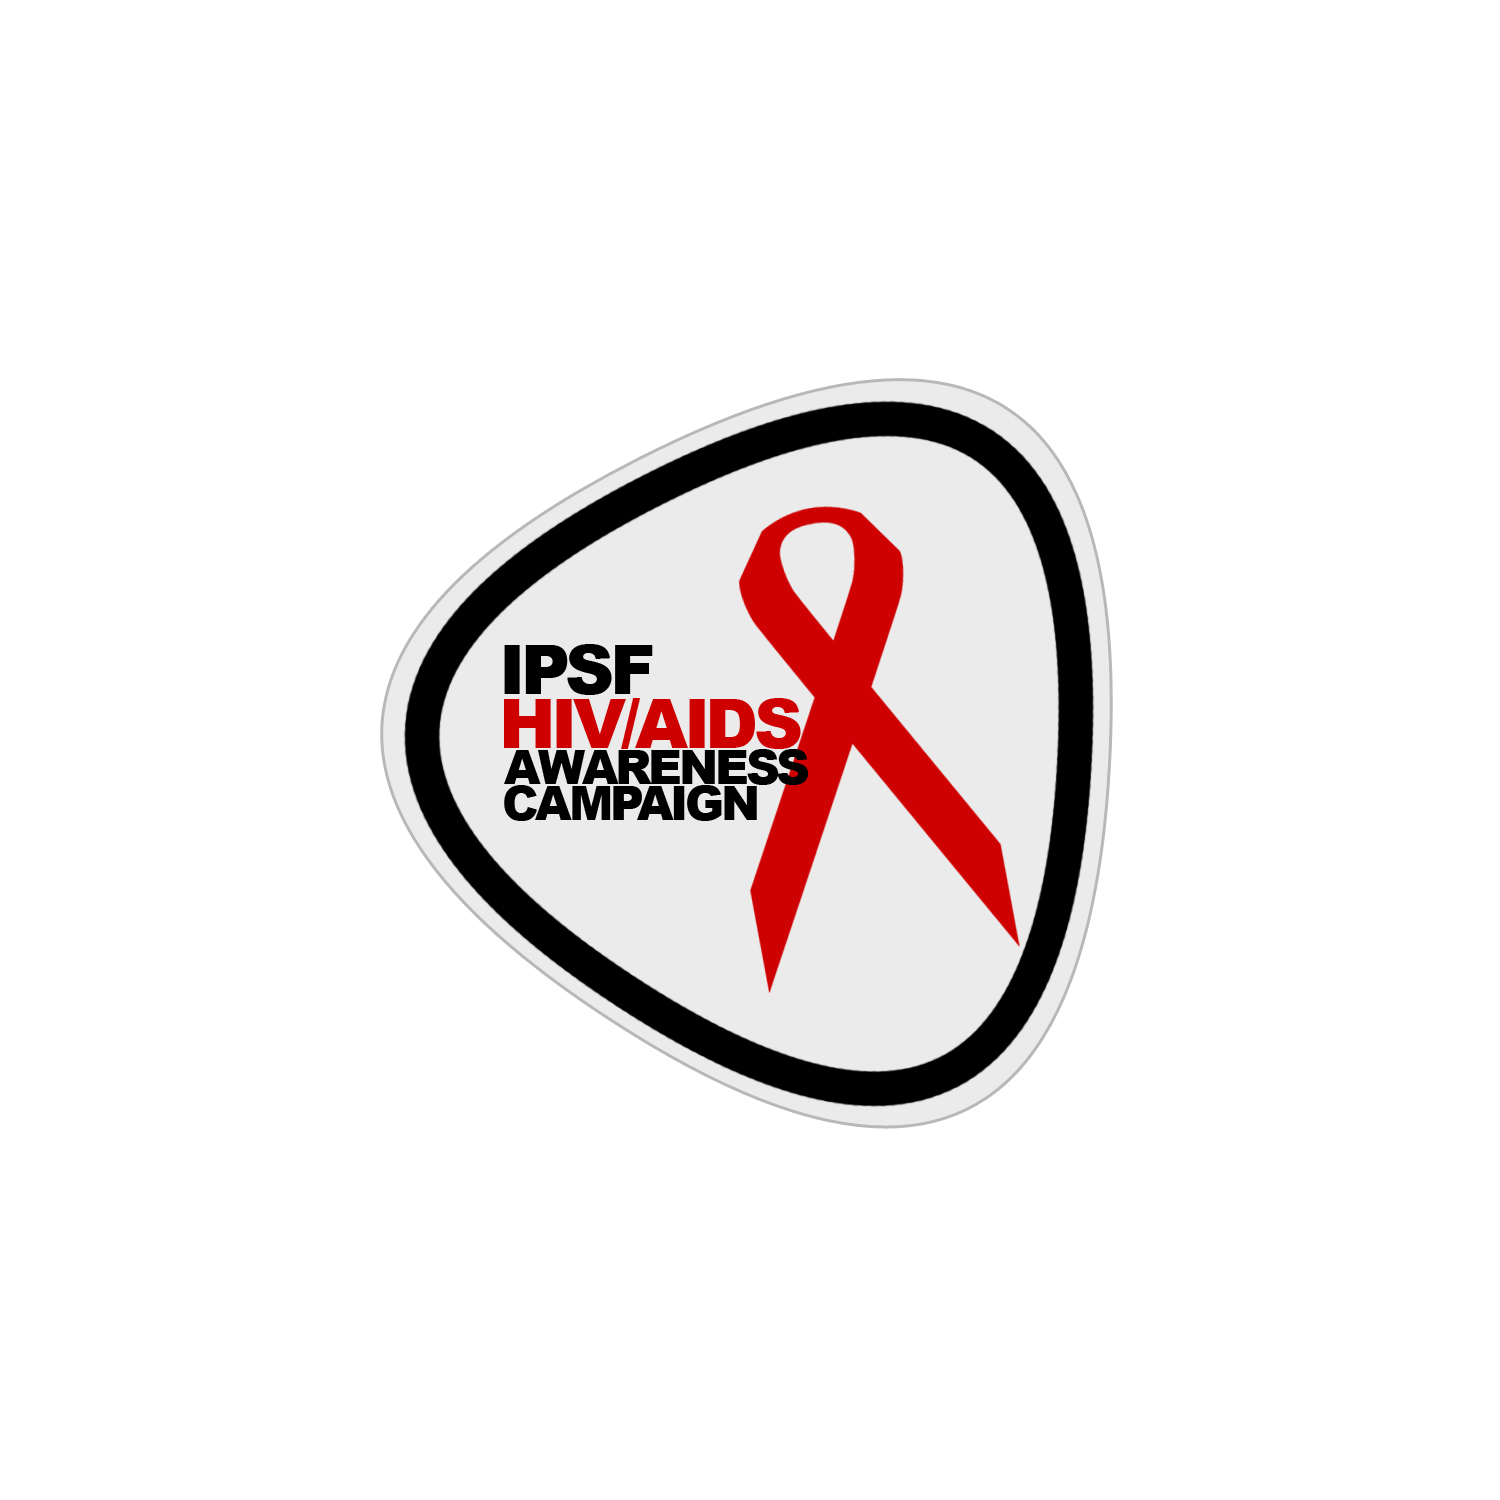 IPSF_HIV-AIDS_Campaign_Logo.jpg?width=300